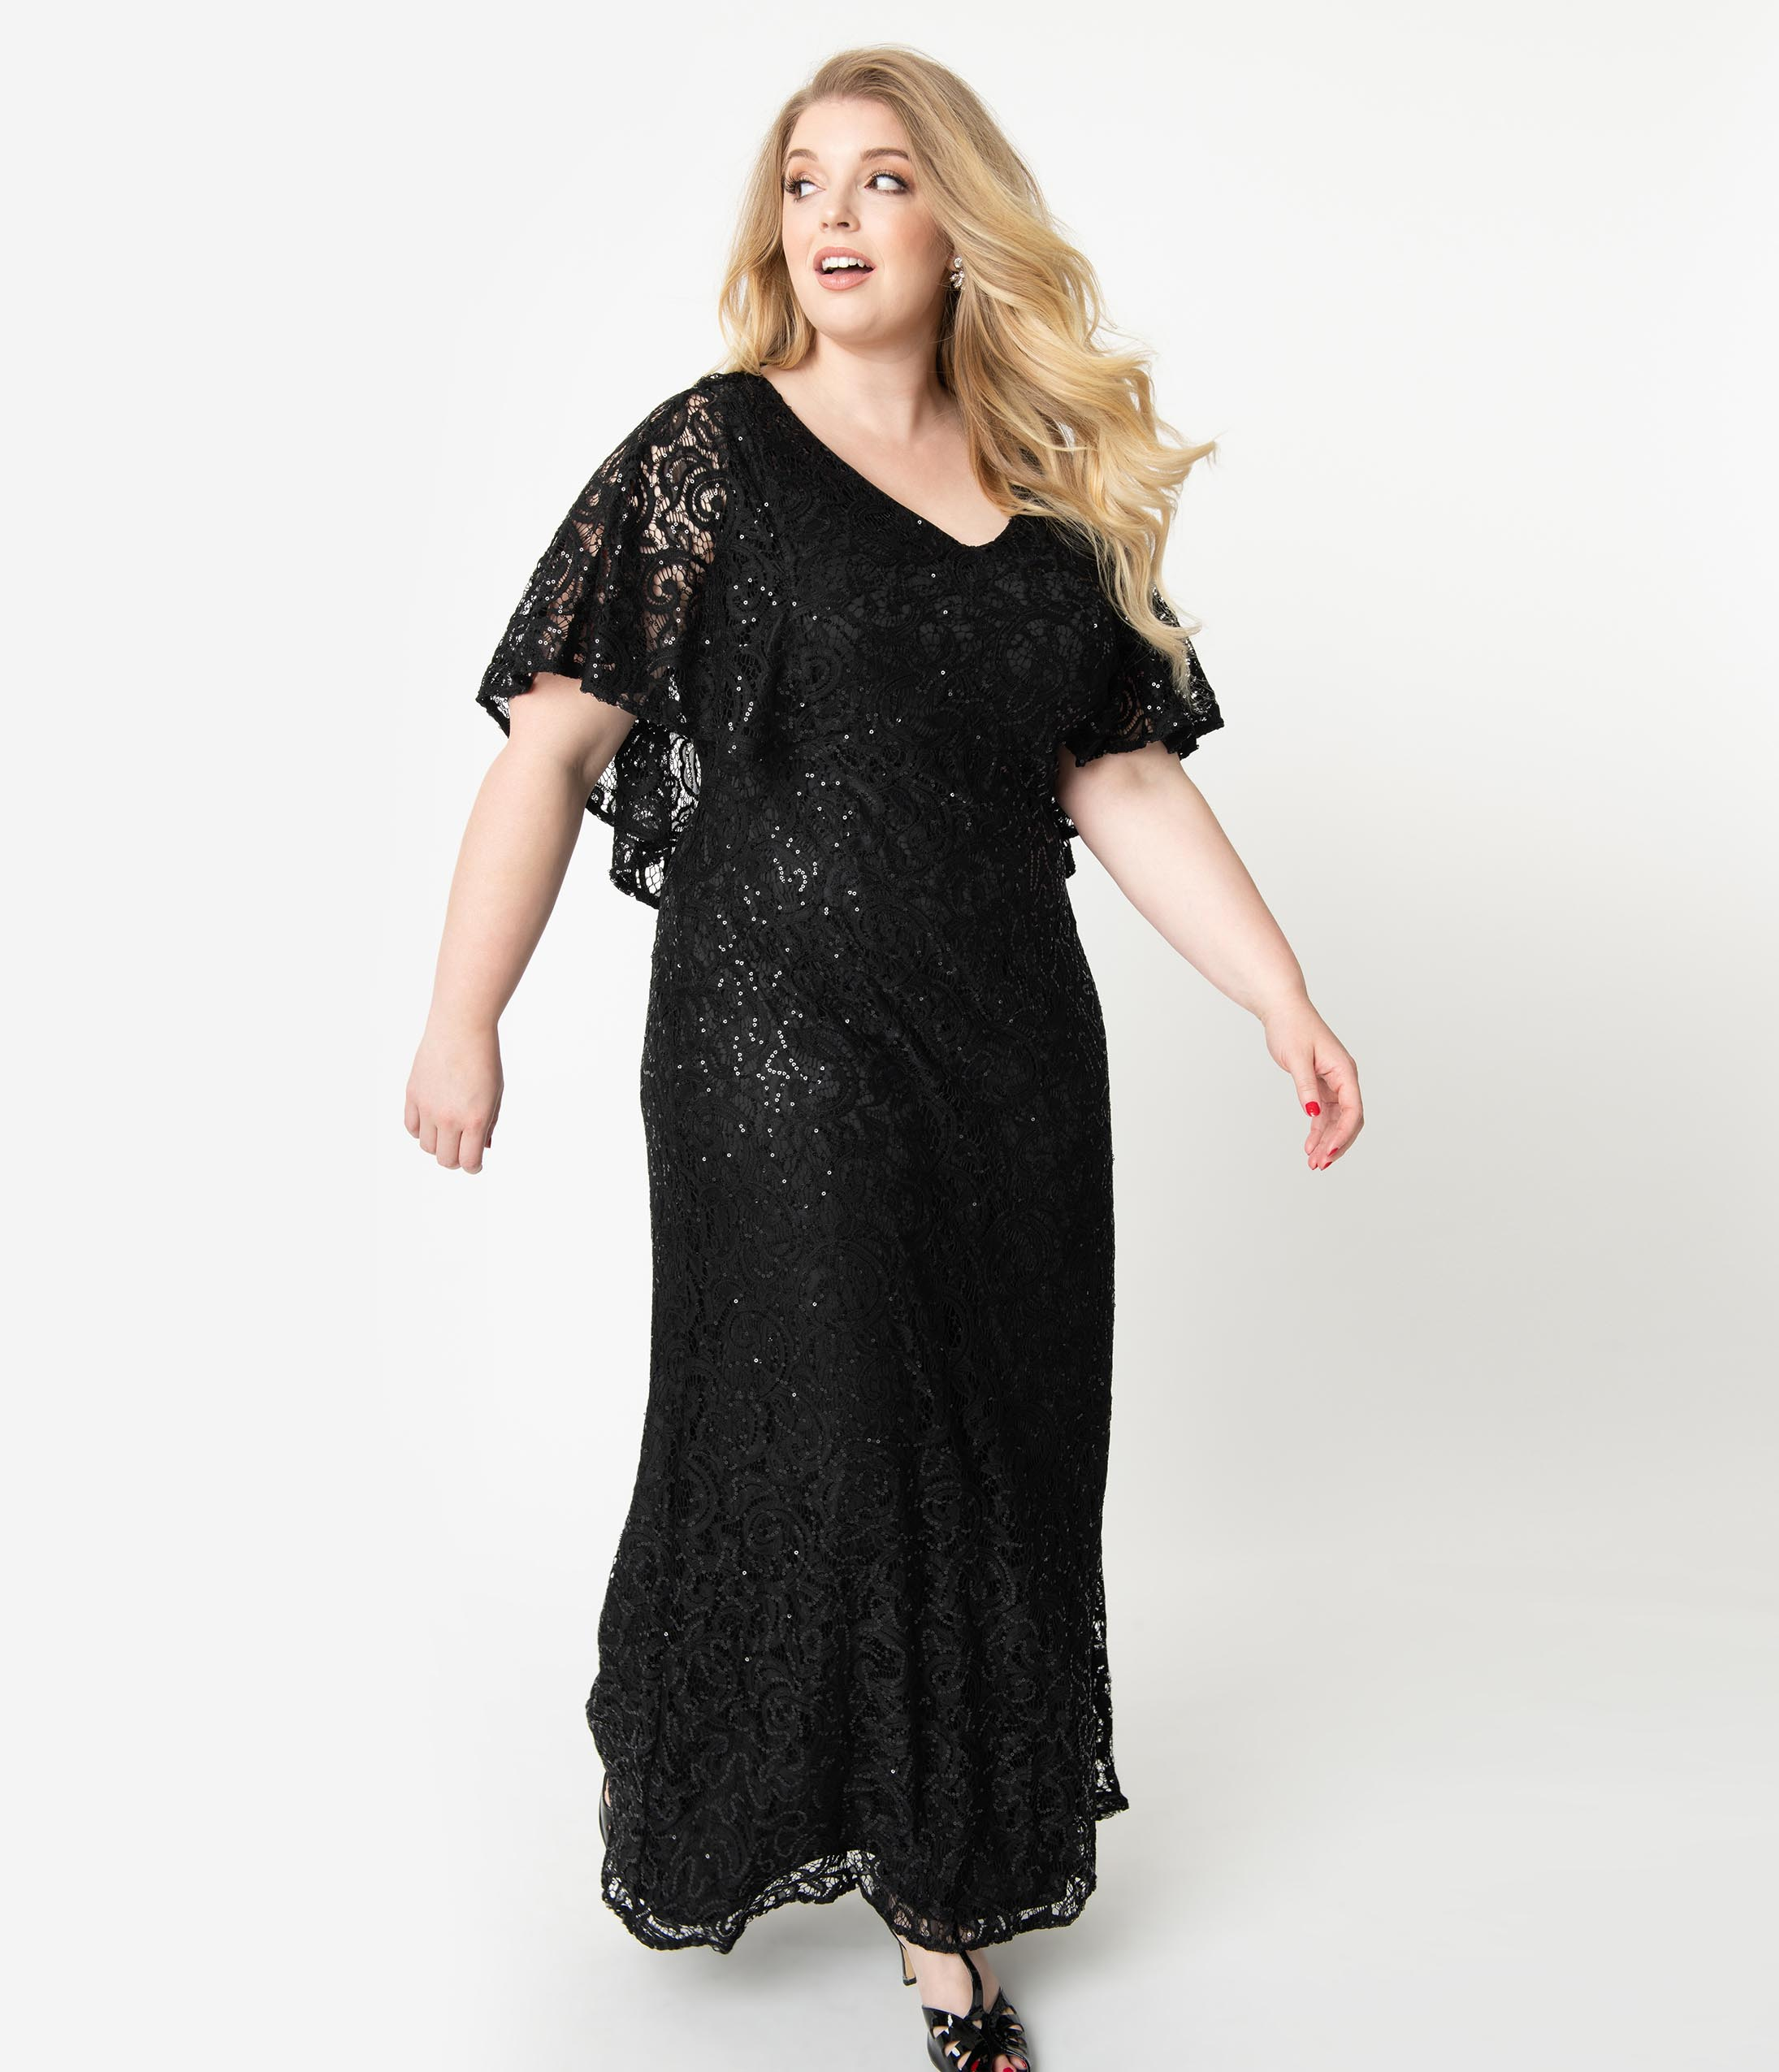 1930s Evening Dresses | Old Hollywood Dress Plus Size Onyx Black Sequin Lace Cape Sleeve Celestial Gown $328.00 AT vintagedancer.com